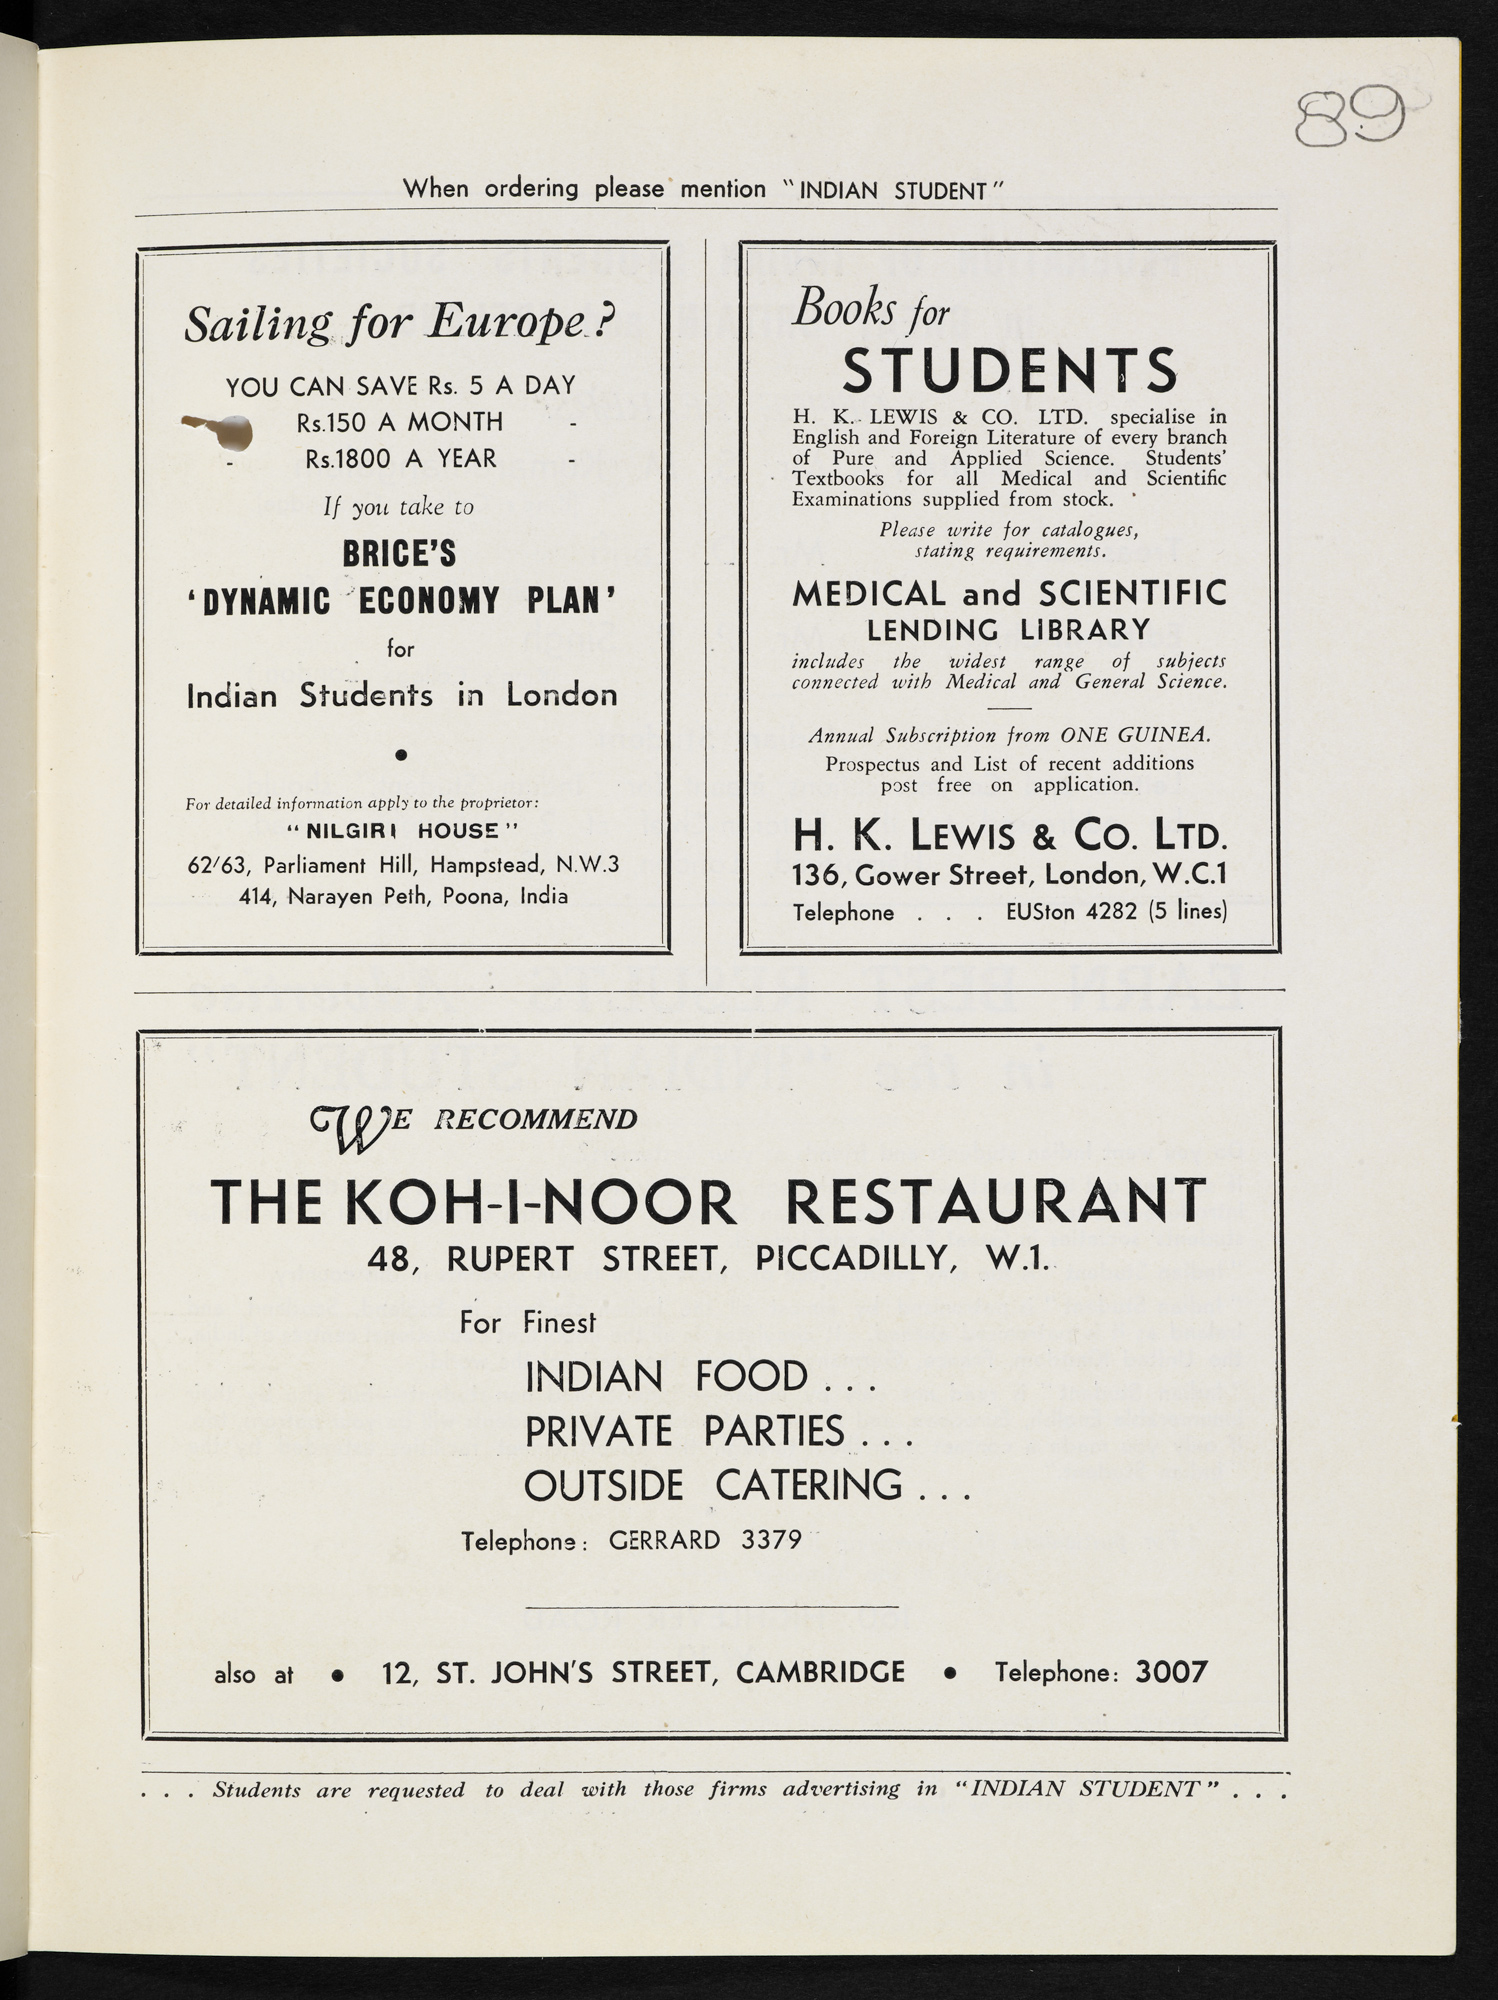 Advertisement for the Koh-I-Noor restuarant in London